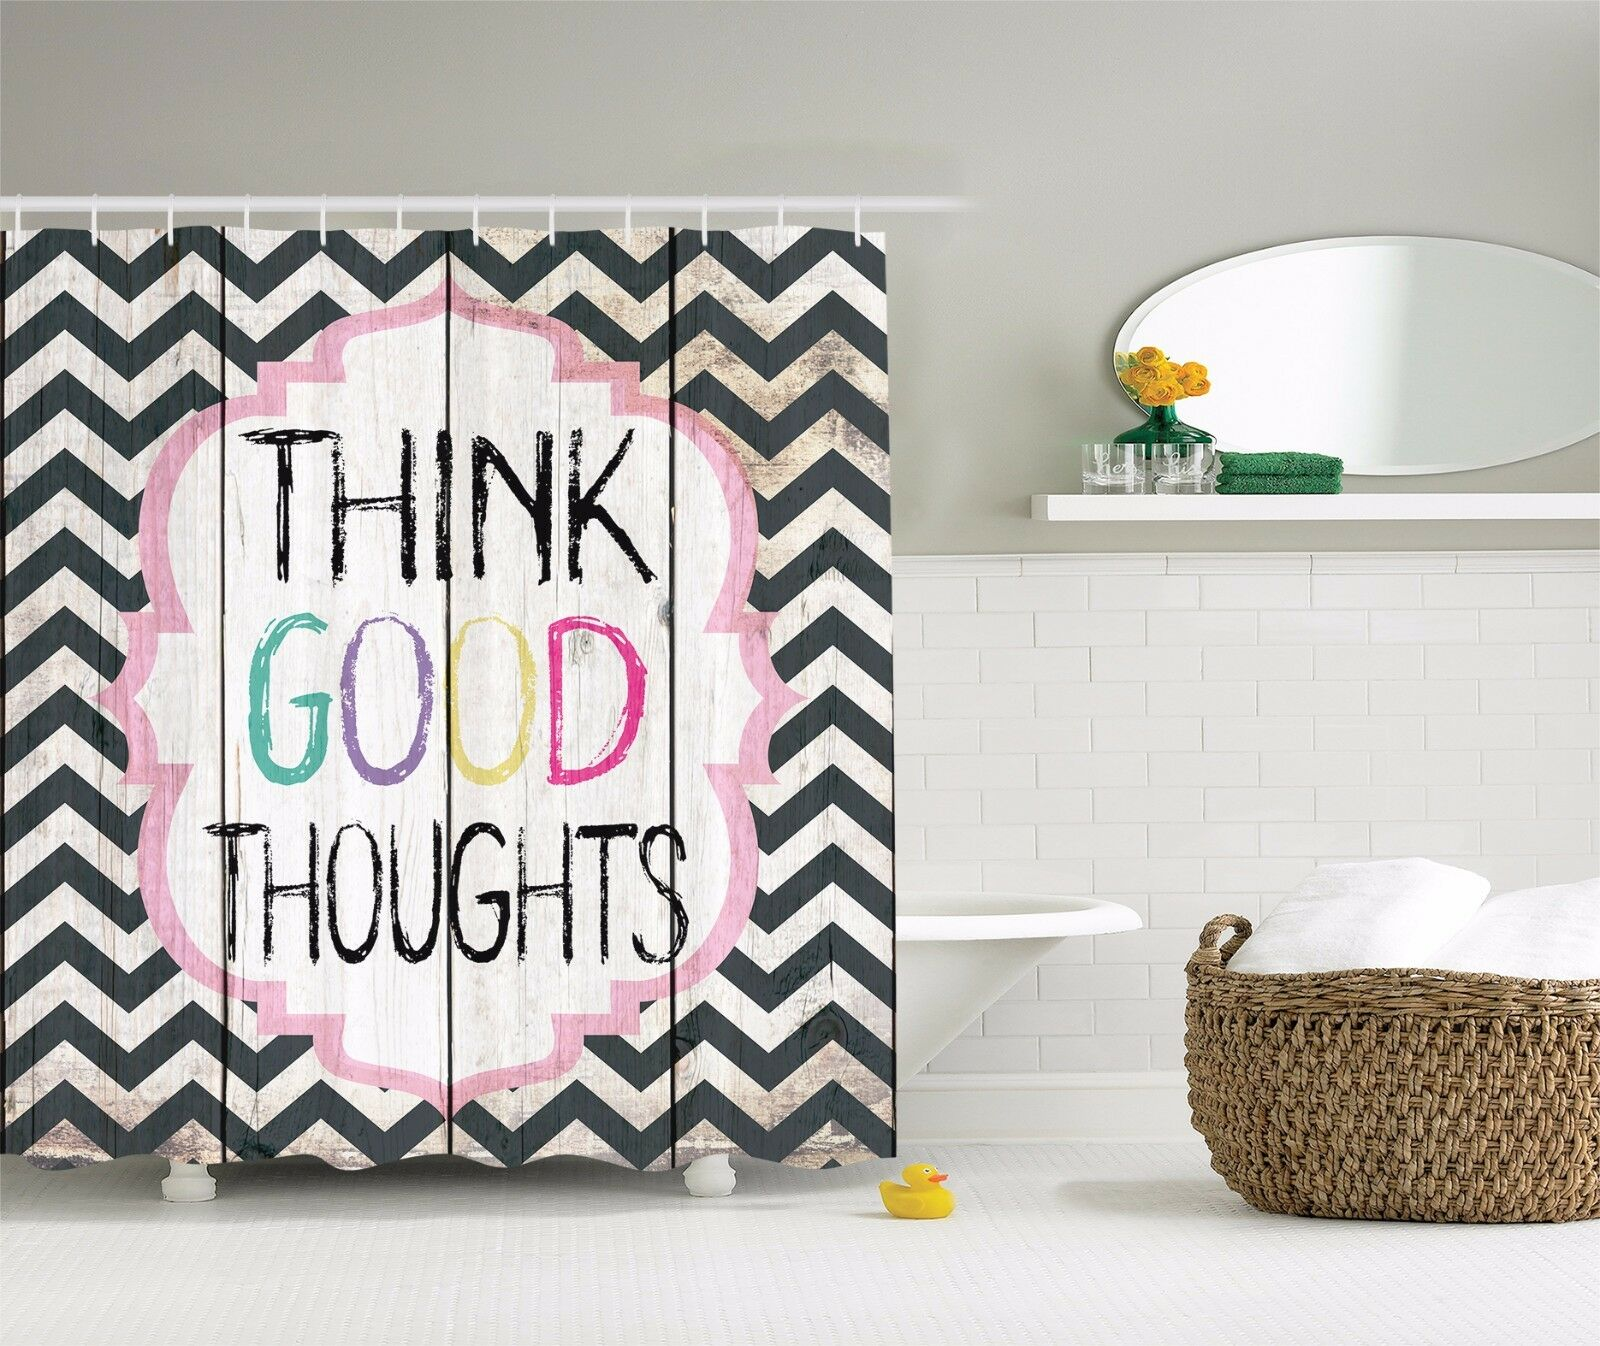 Think Good Thoughts Inspirational Quotes Shower Curtain Extra Long ...